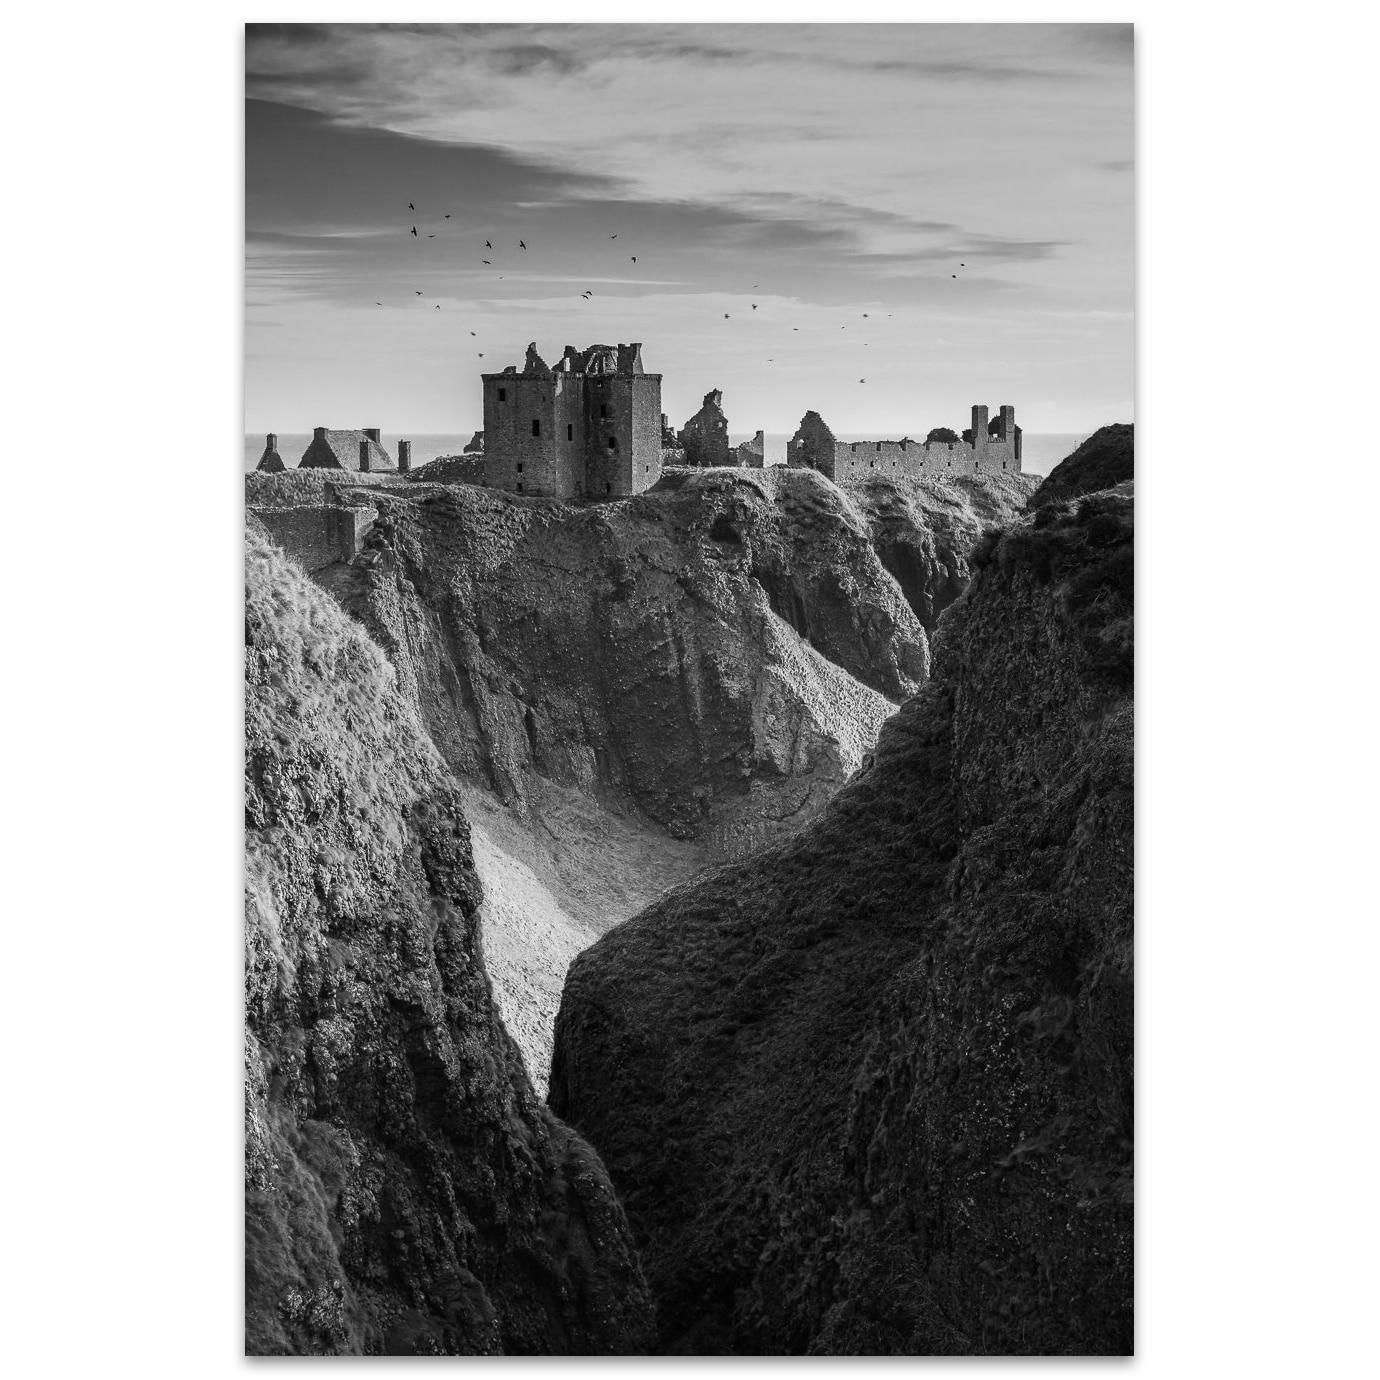 Birds above Dunnottar castle in Scotland